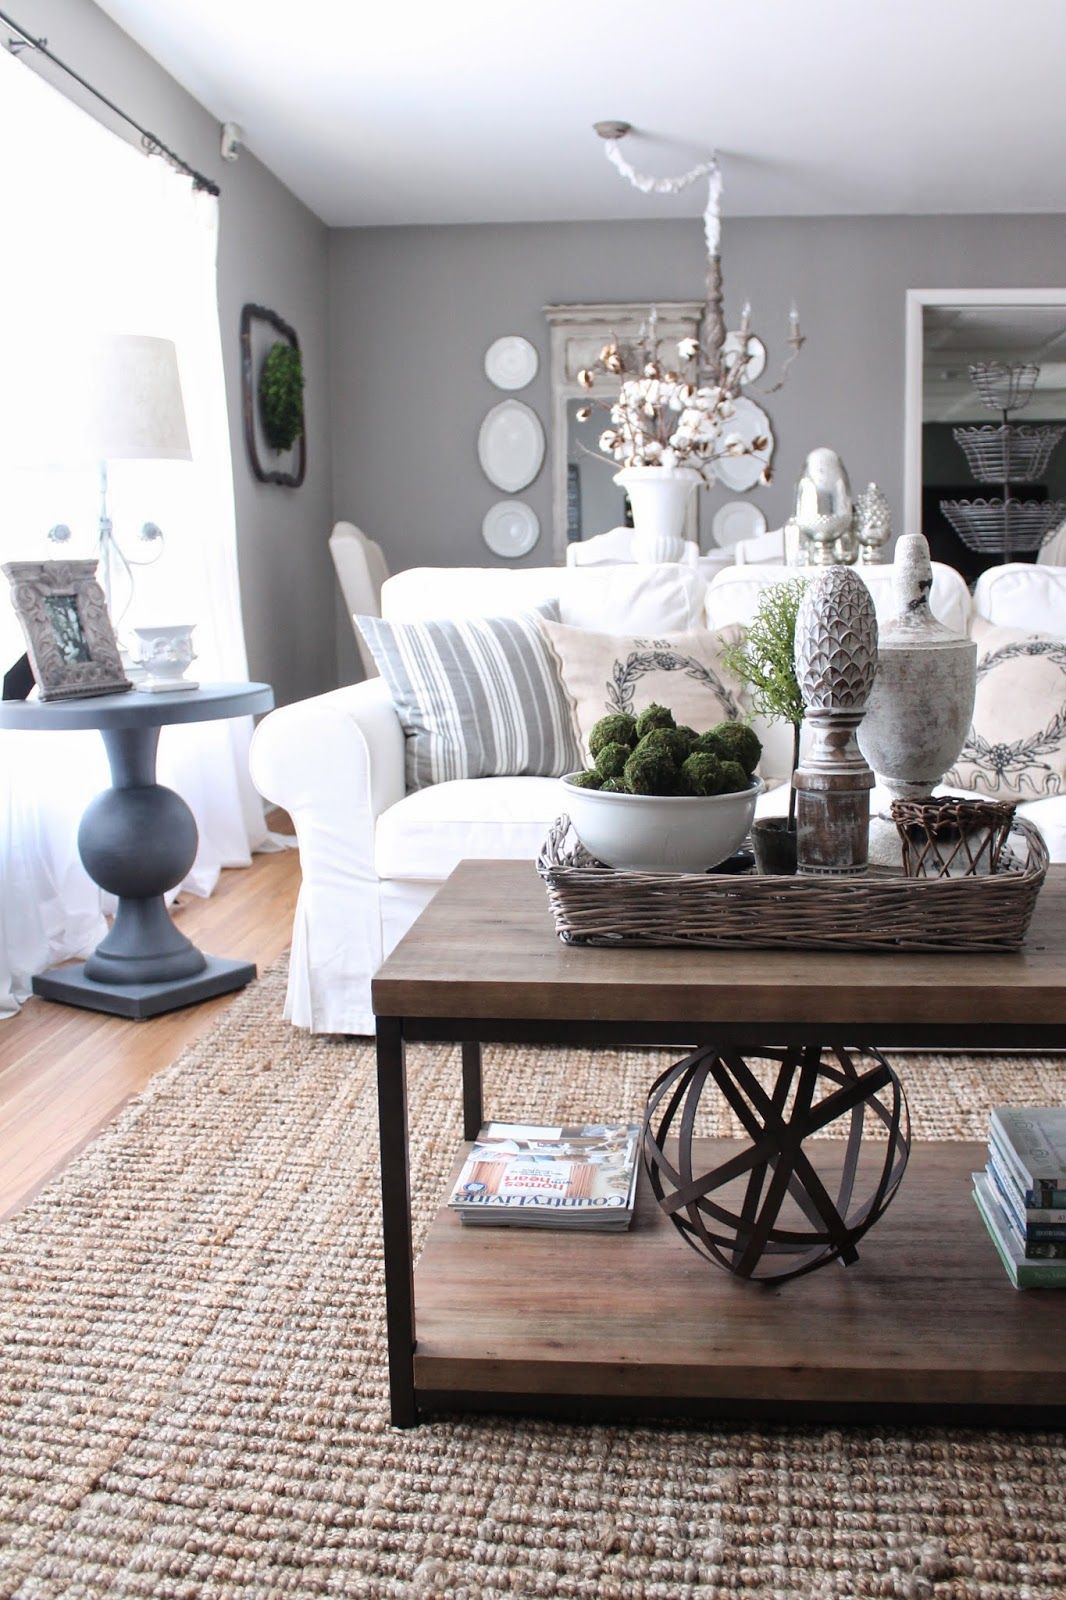 House Tour Decorating coffee tables, French country